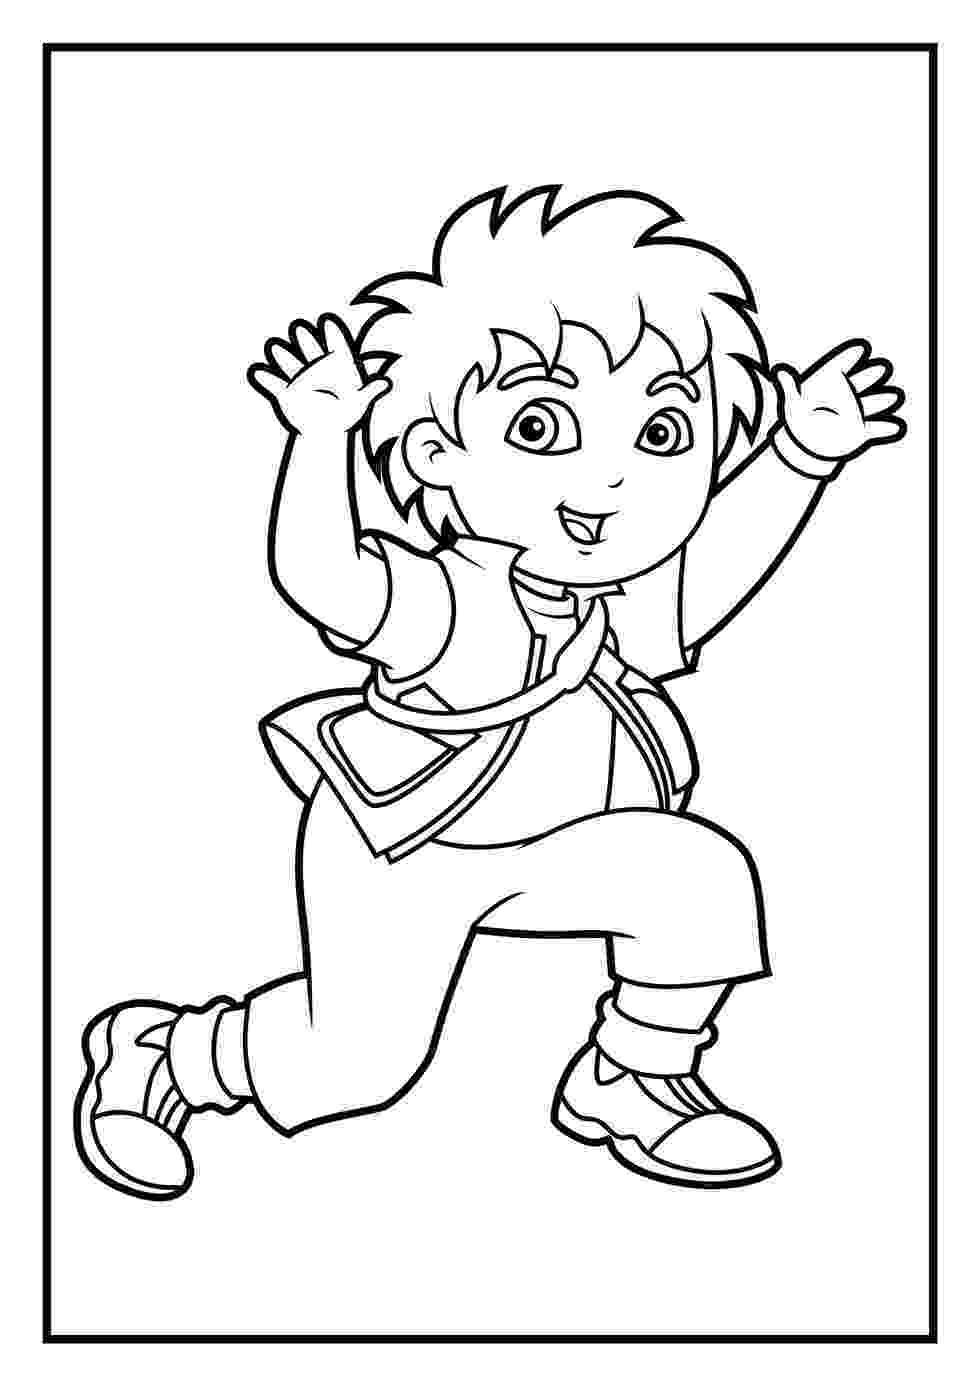 coloring games printable sonic coloring pages for kids cool2bkids games coloring